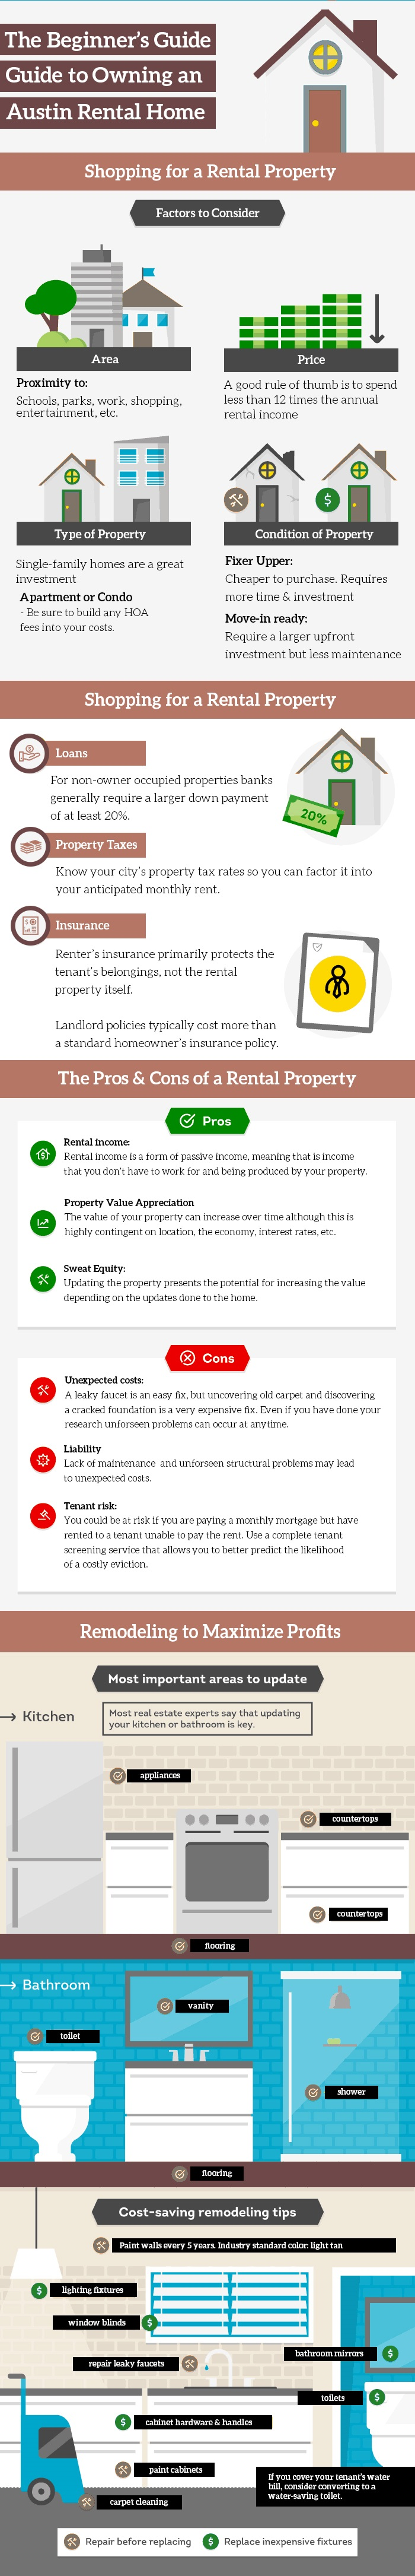 austin rental homes infographic